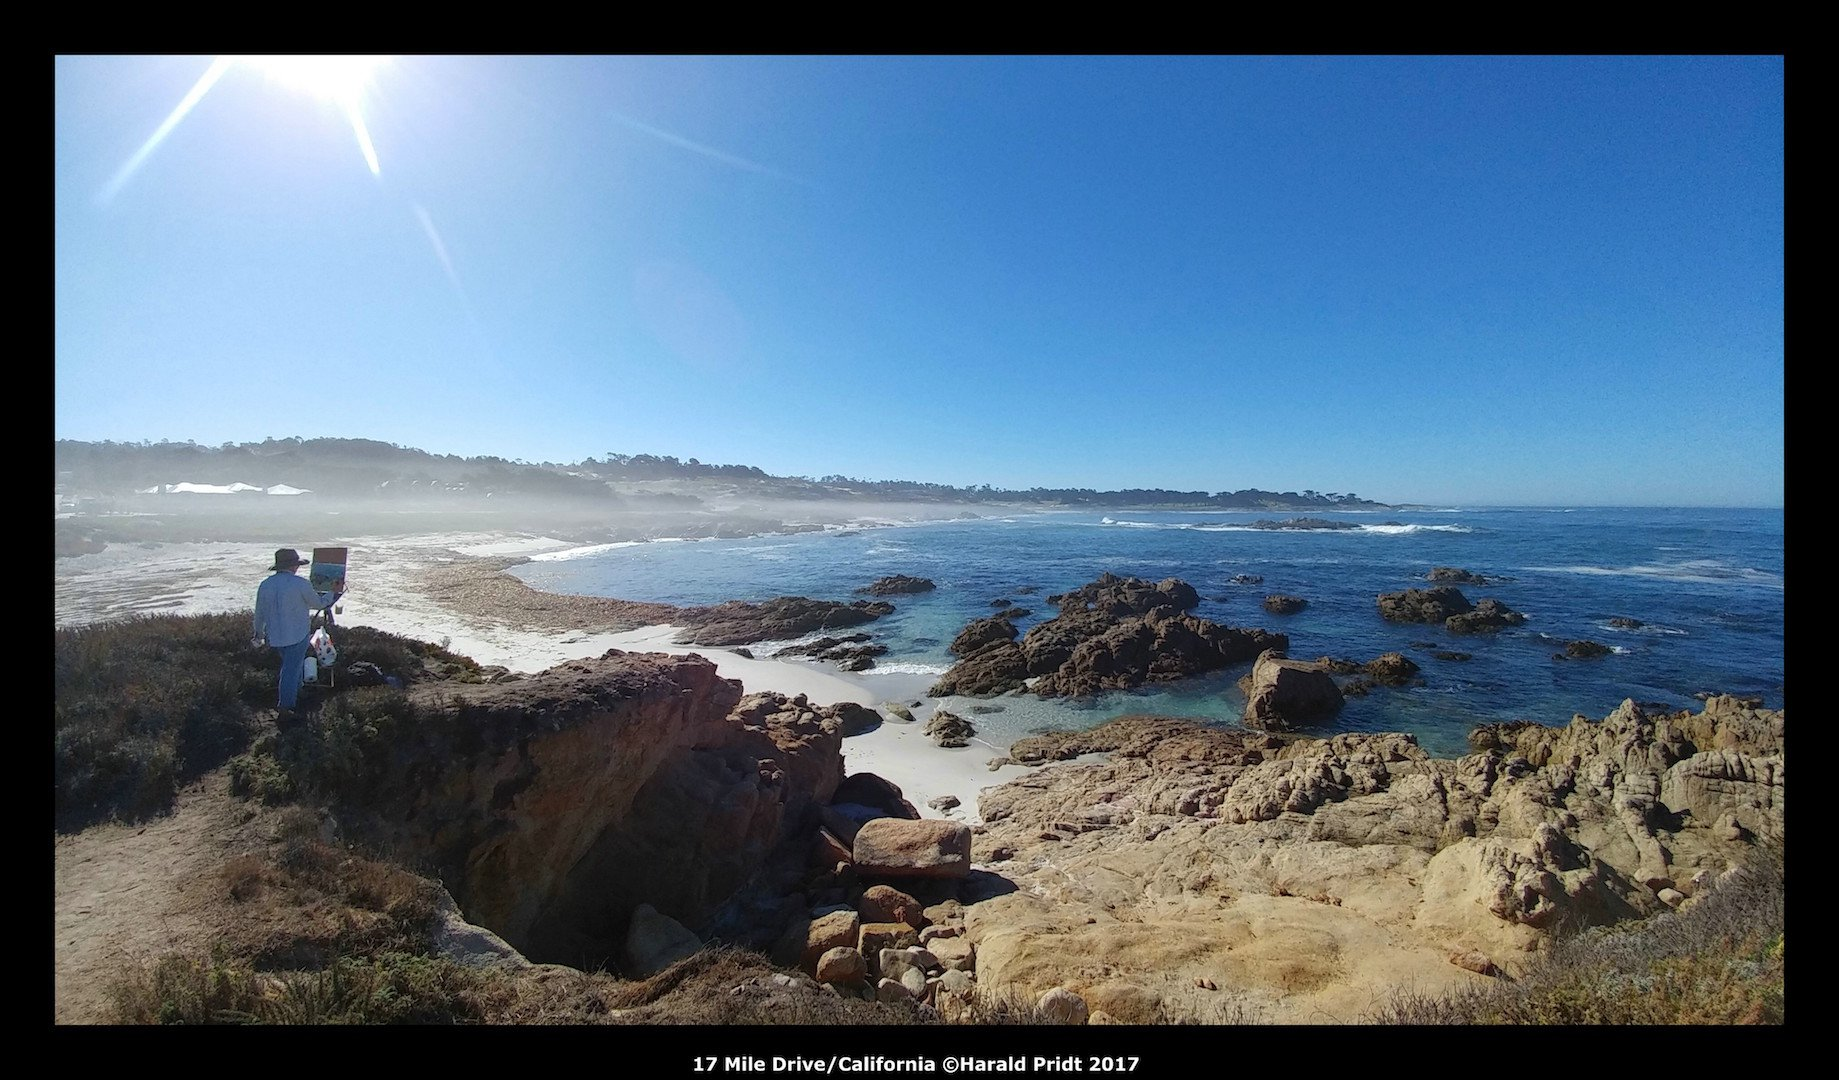 USA Road Trip Quer Etappen California 17 Mile Drive